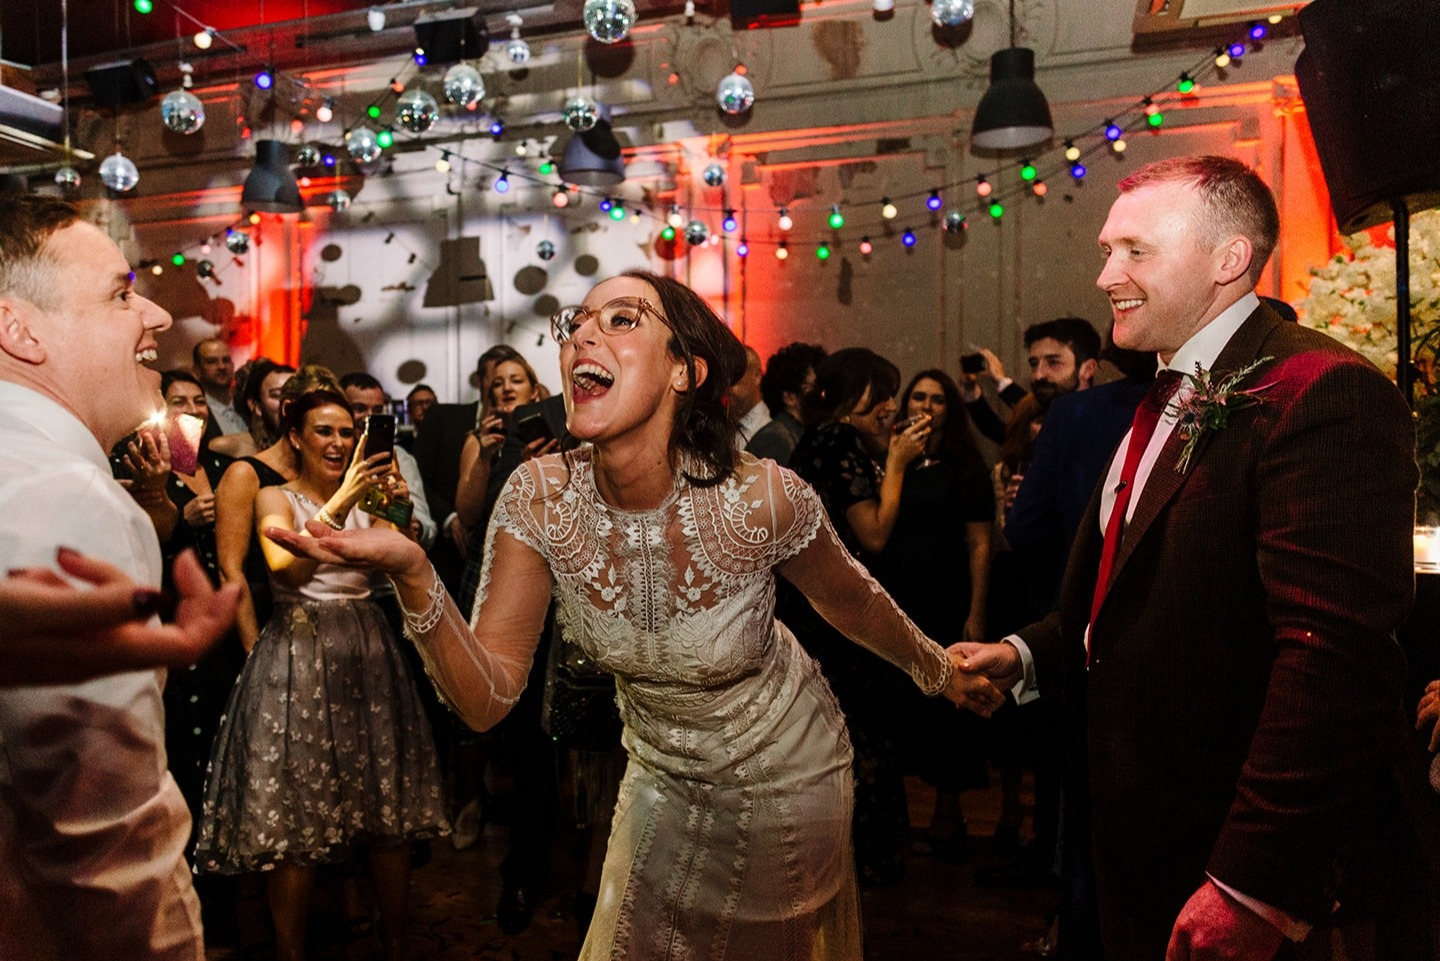 liverpool wedding at leaf bold street bride and groom dancing